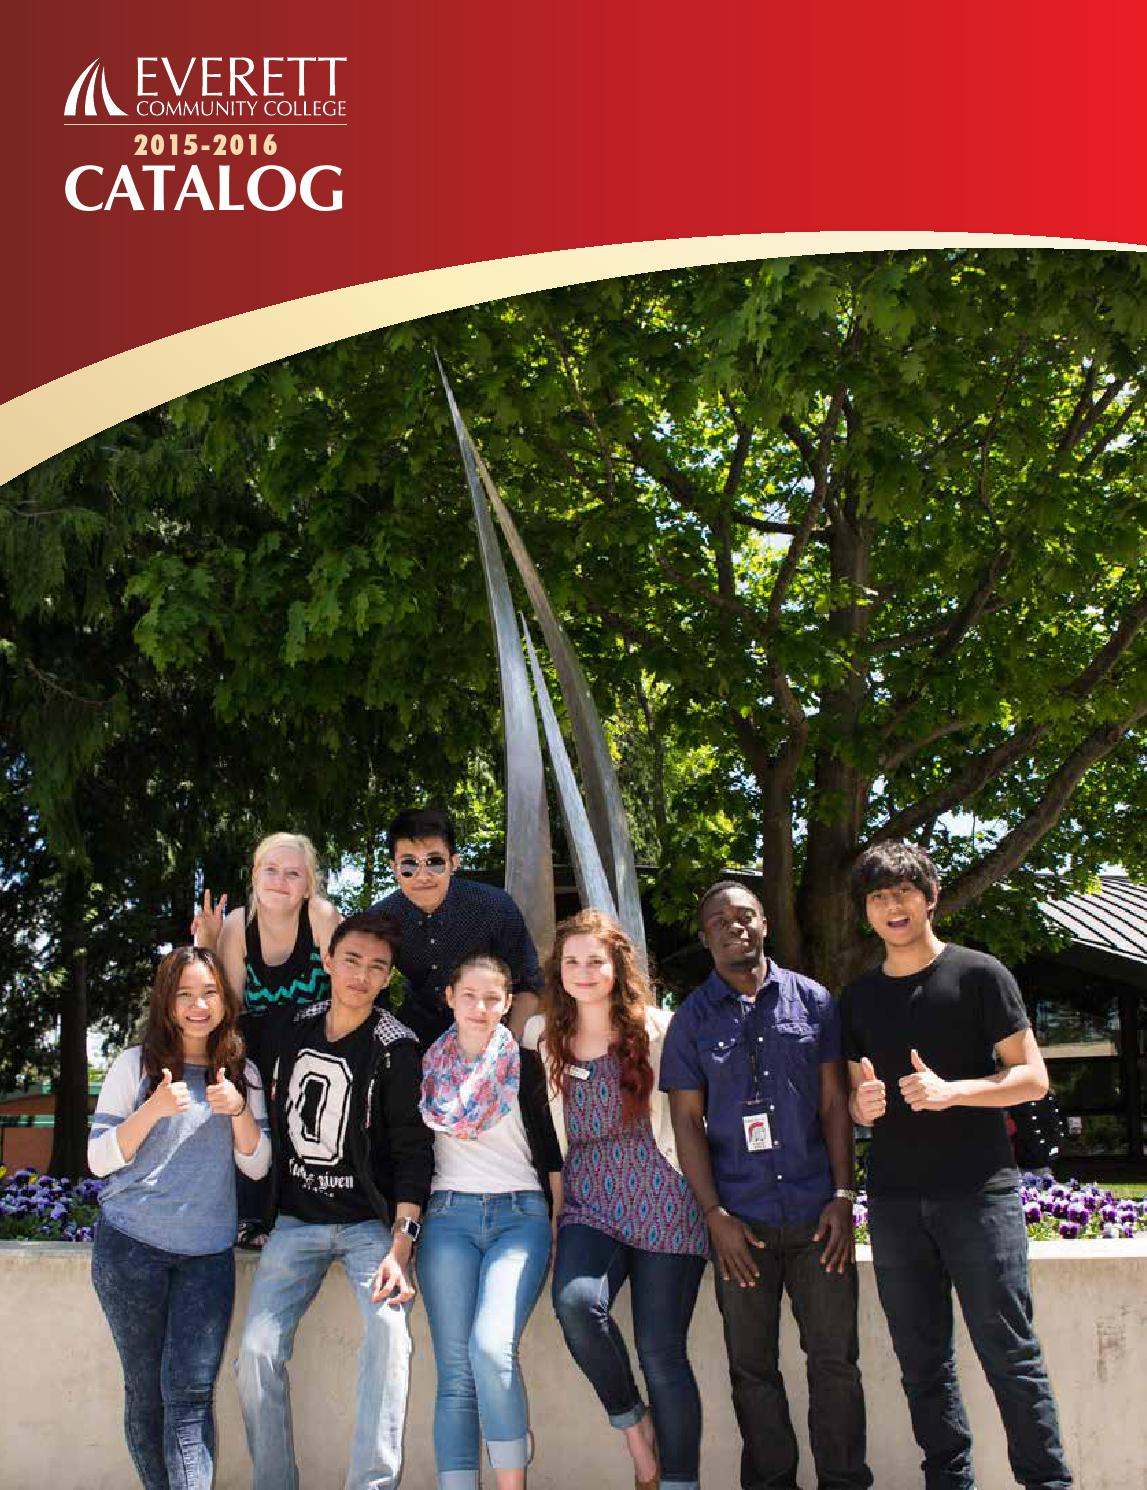 Evcc Class Catalog 2015 16 By Everett Community College Issuu James Clark Maxwell And Switched Capacitor Filters Eeweb